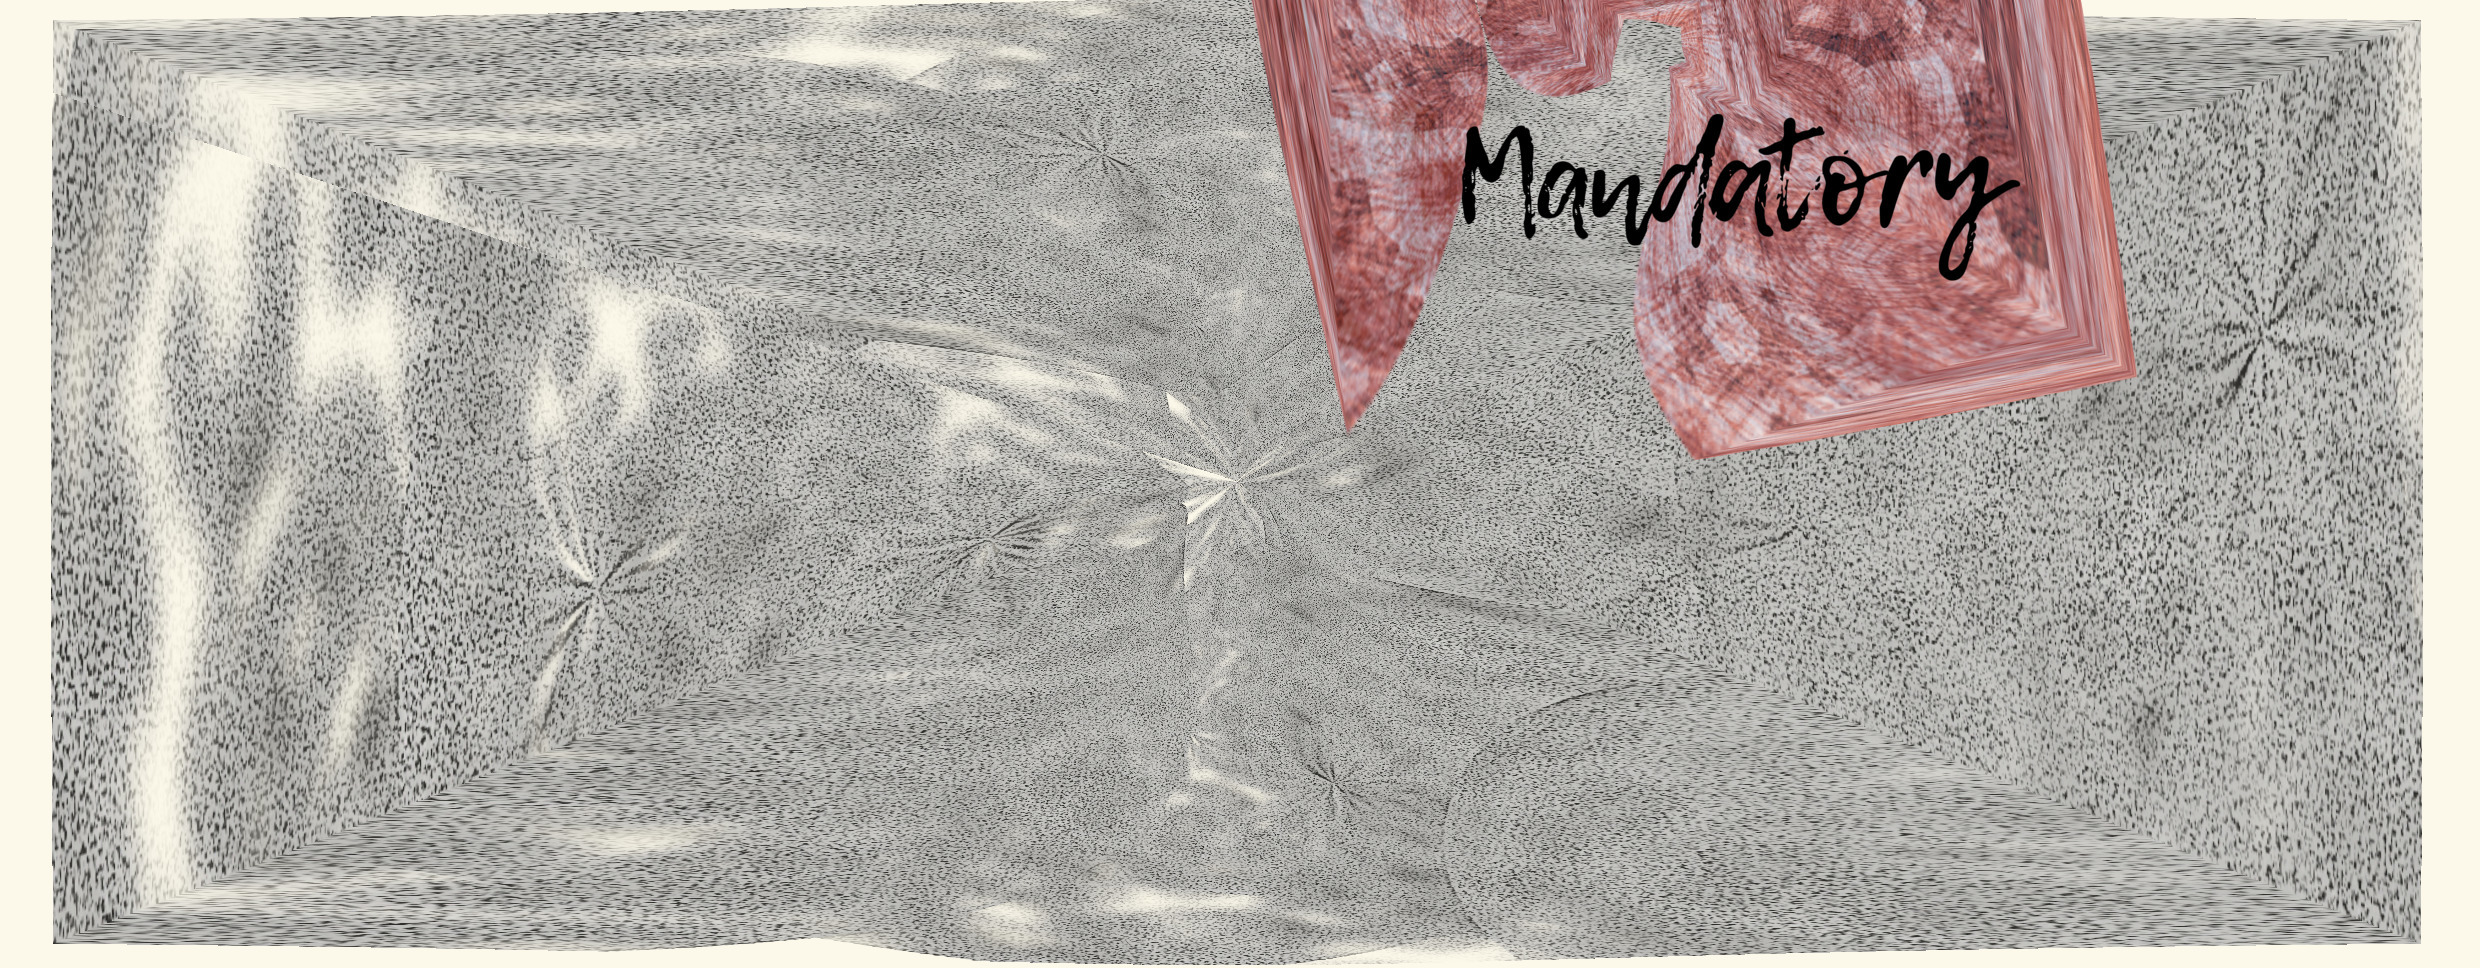 Mandatory Records (@mandatoryrecords) Cover Image